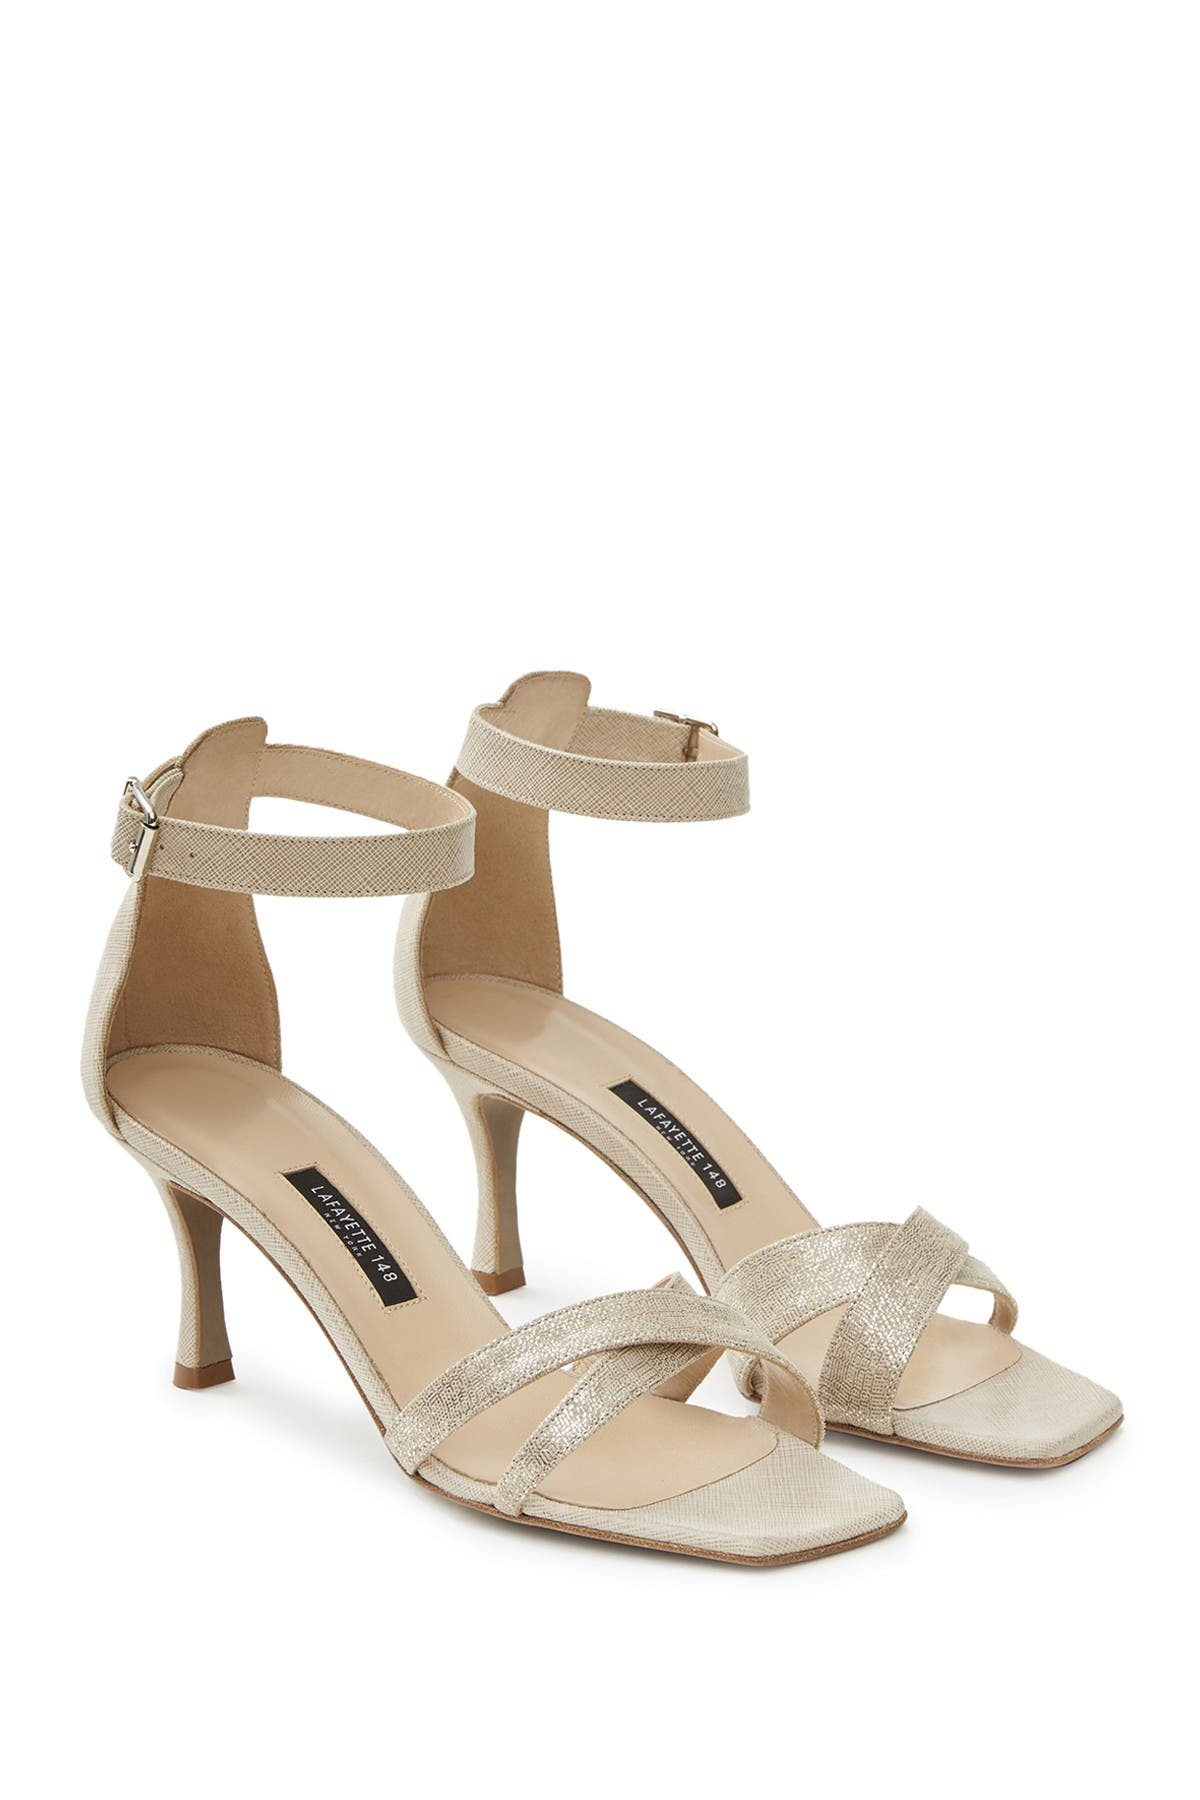 Image of Lafayette 148 New York Lula Ankle Strap Sandal